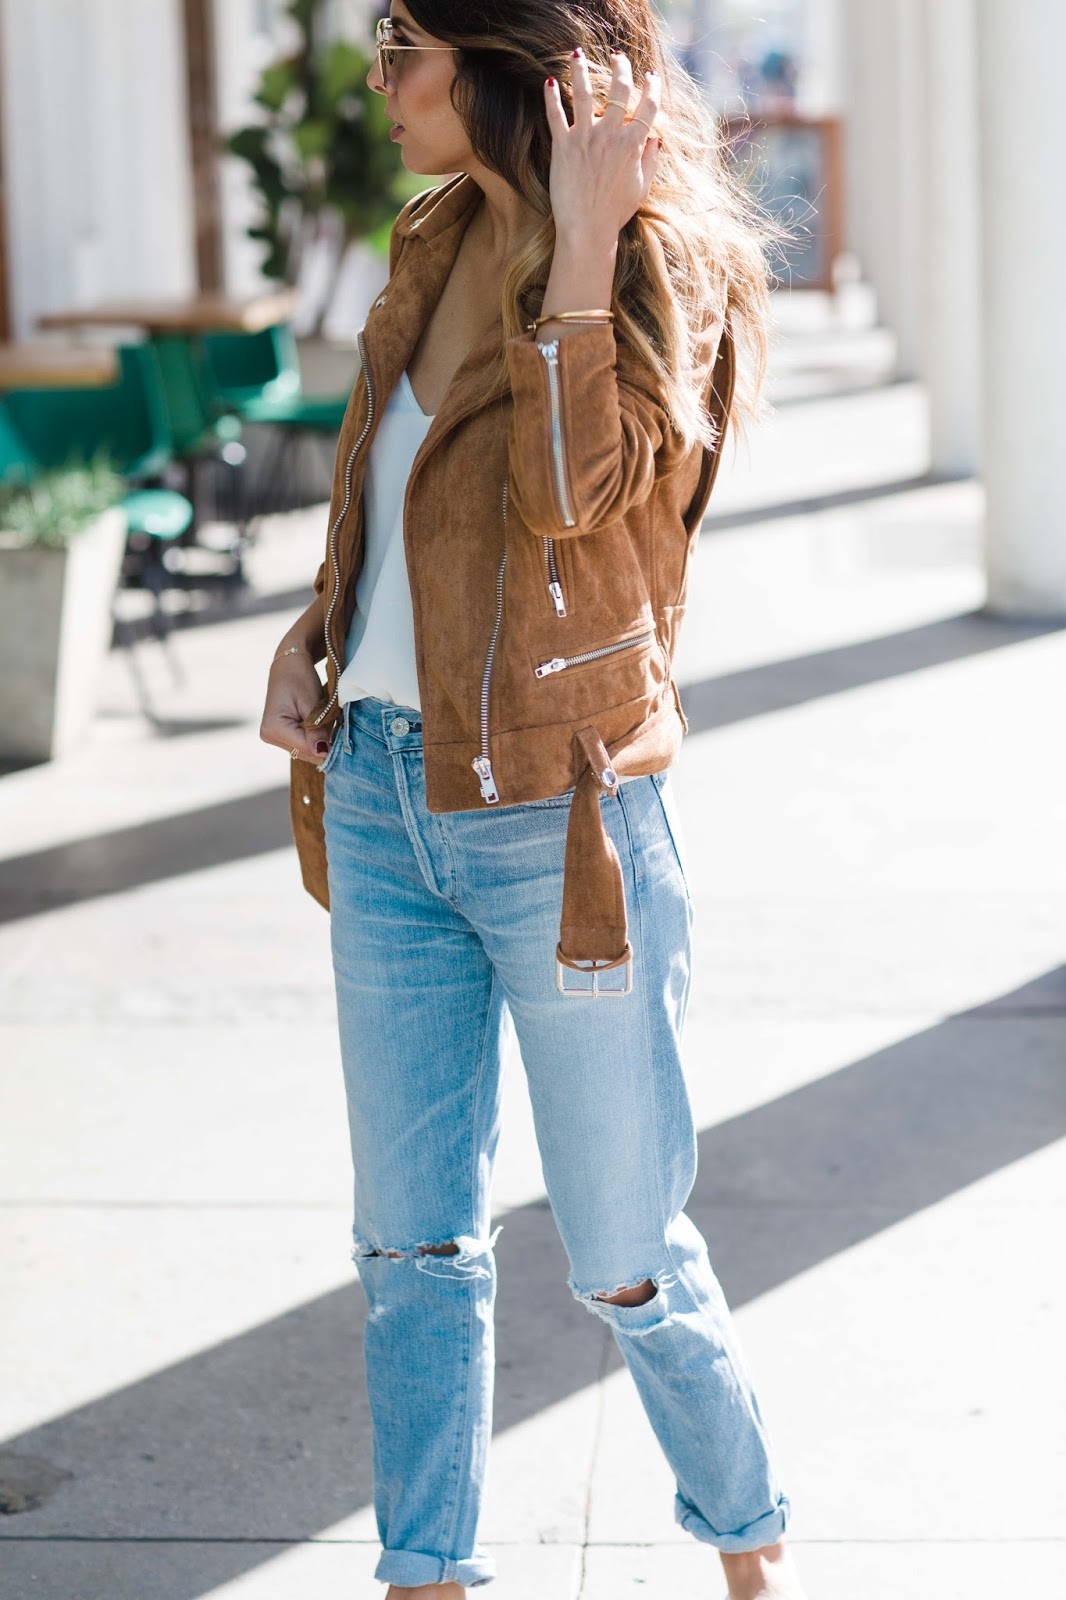 how to style boyfriend jeans, how to wear slides, styling leopard shoes